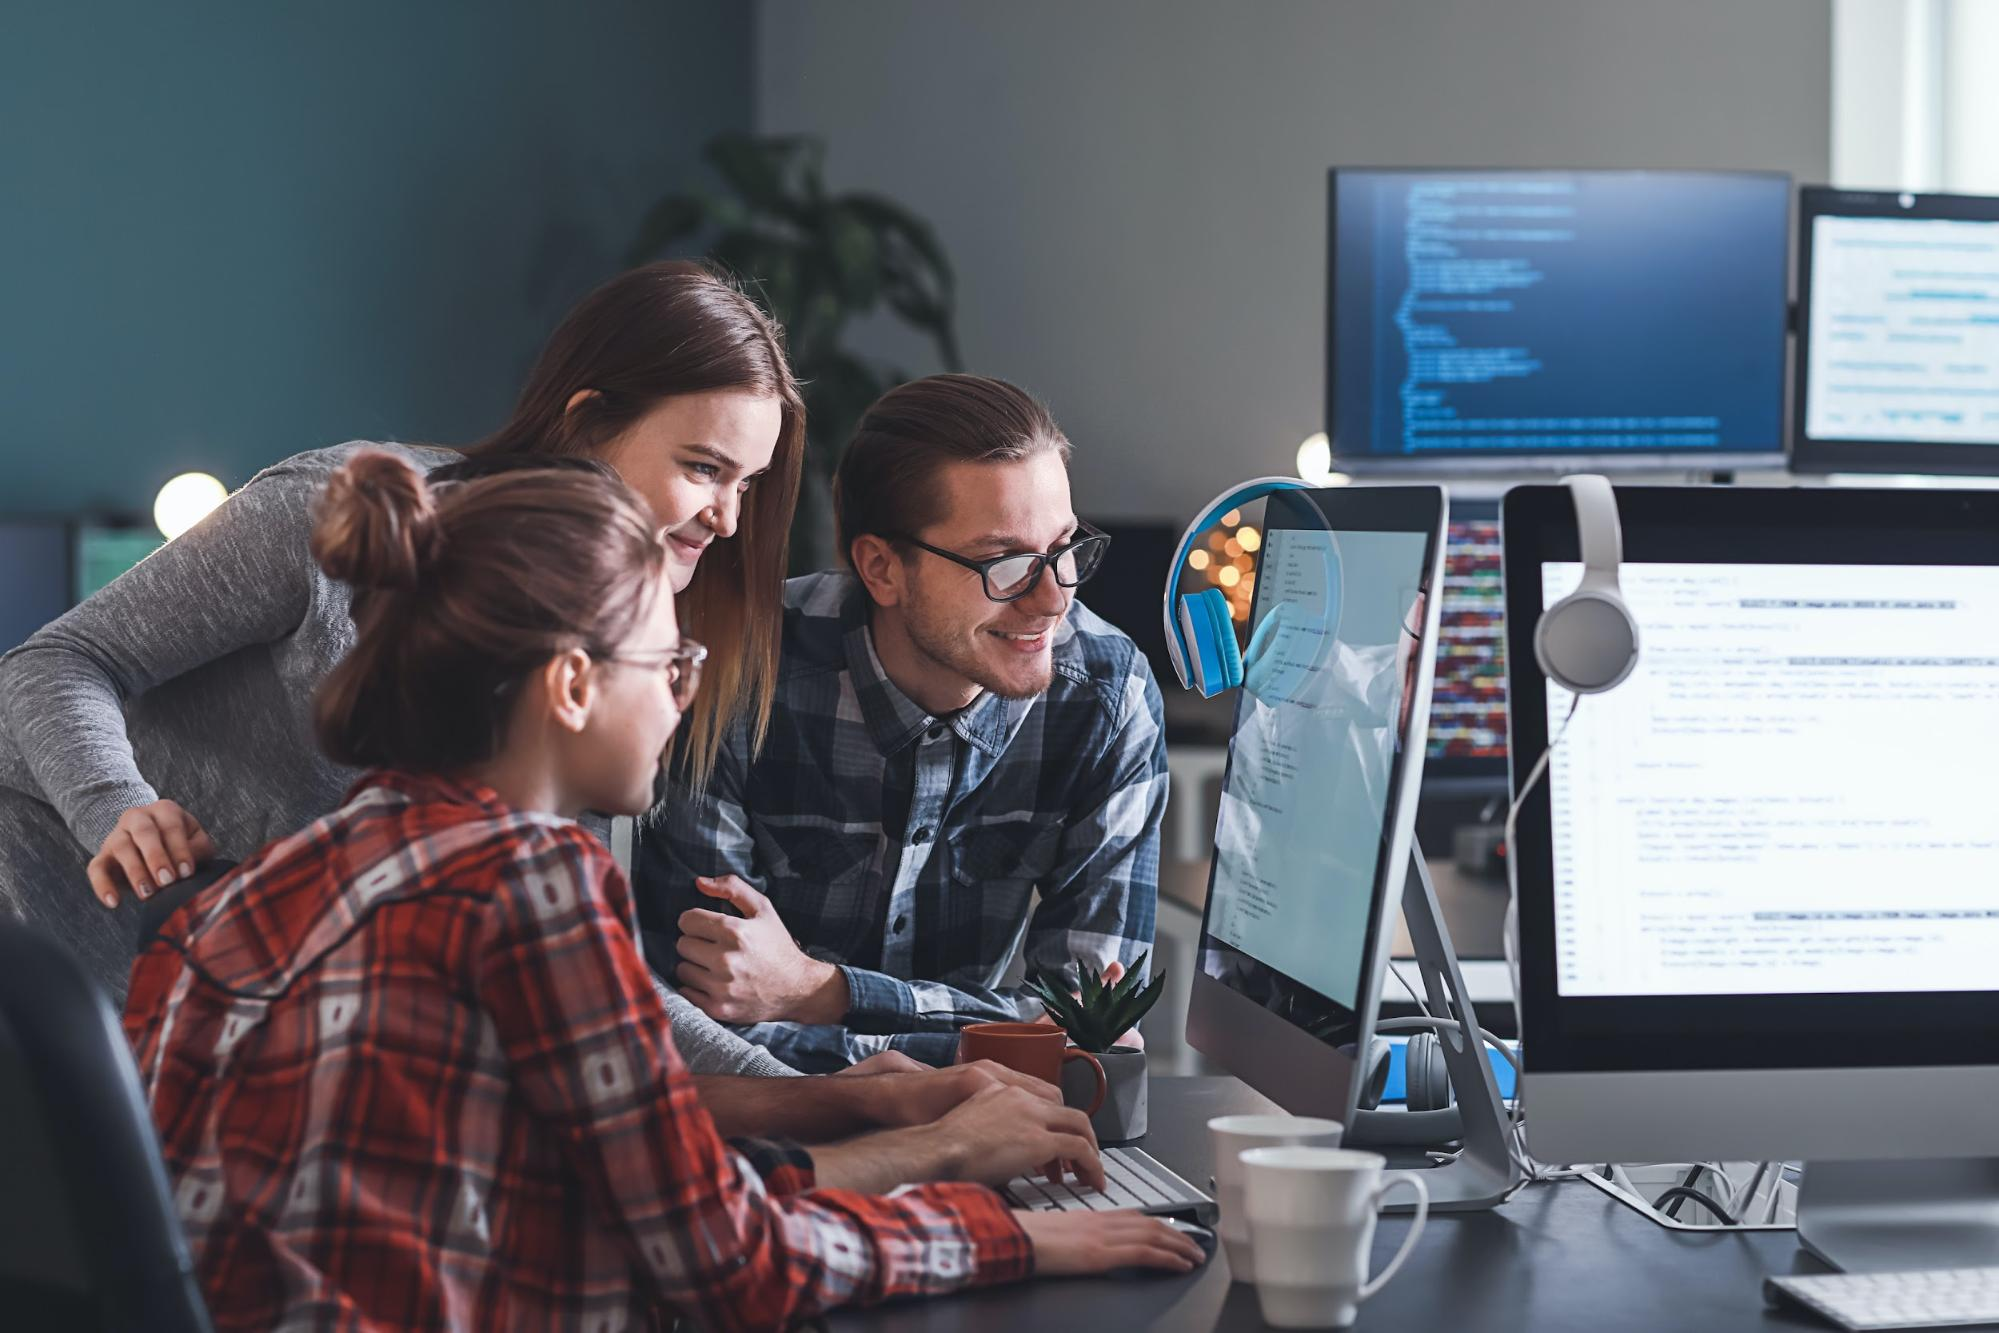 entry level IT jobs: two women and a man looking at the monitor